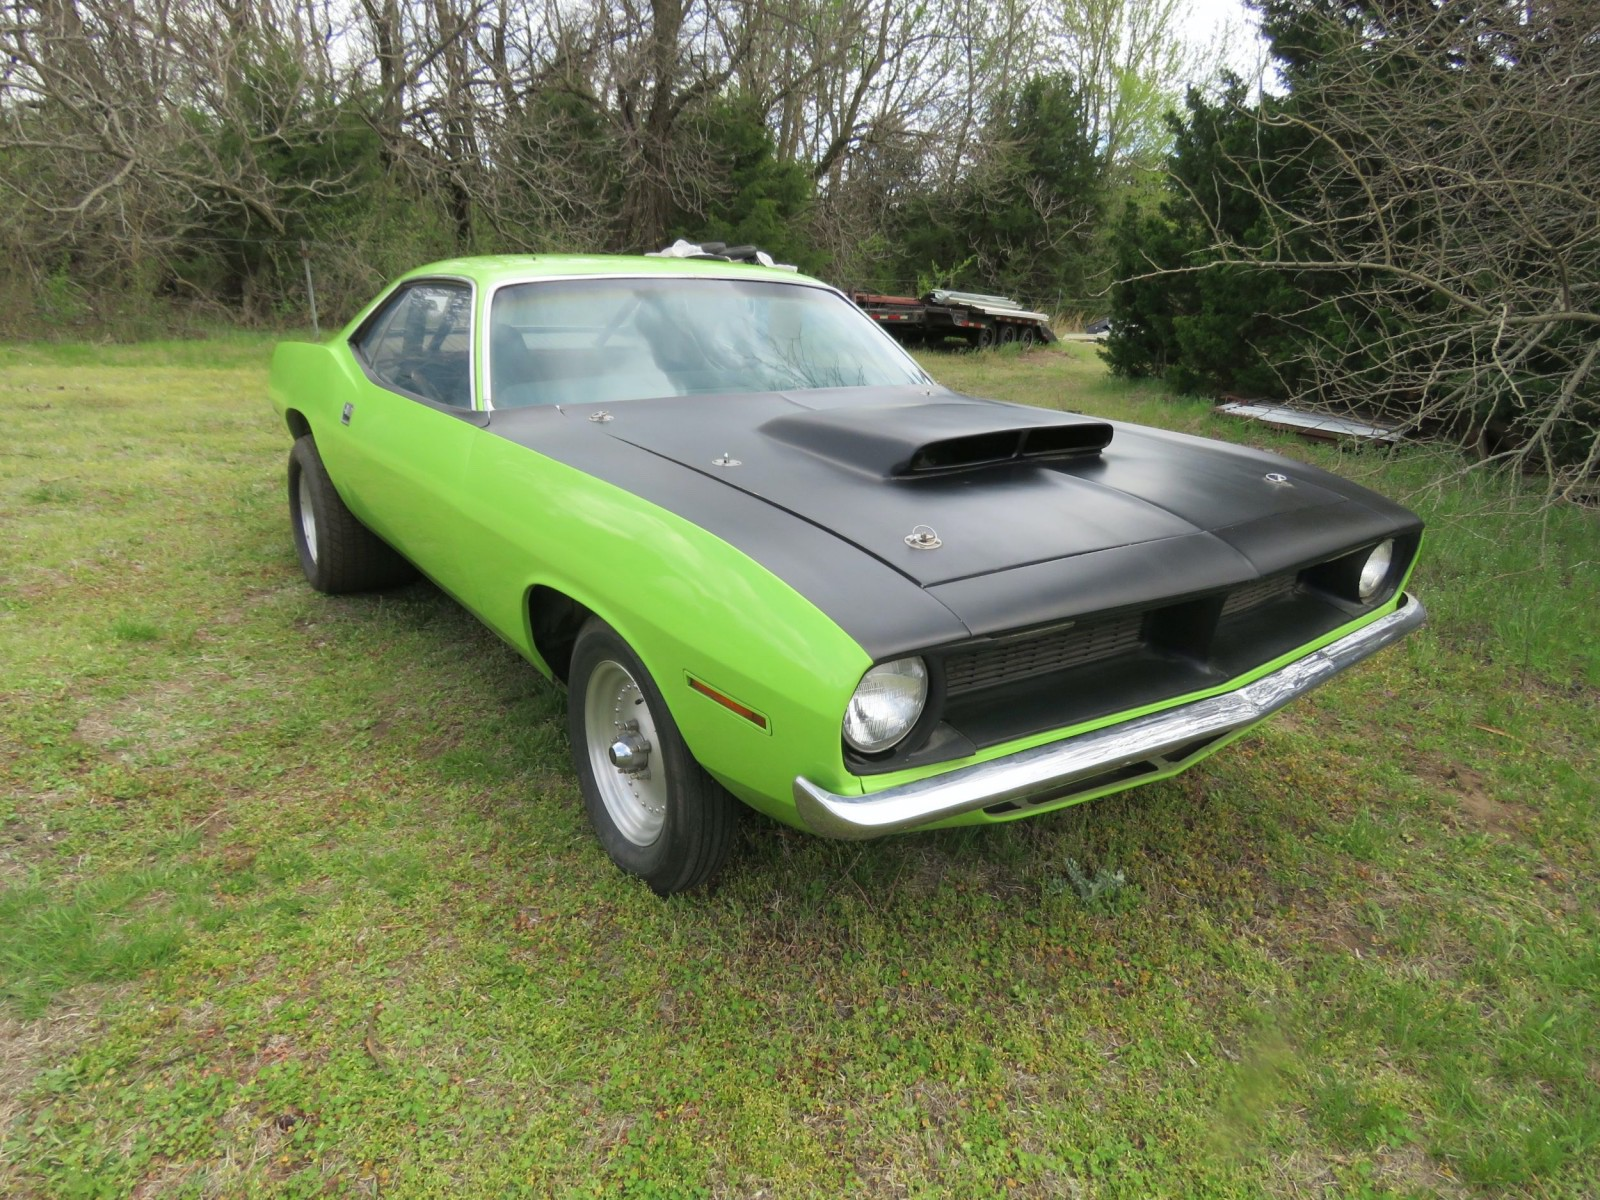 bob-regehr-collection-1970-plymouth-cuda-1